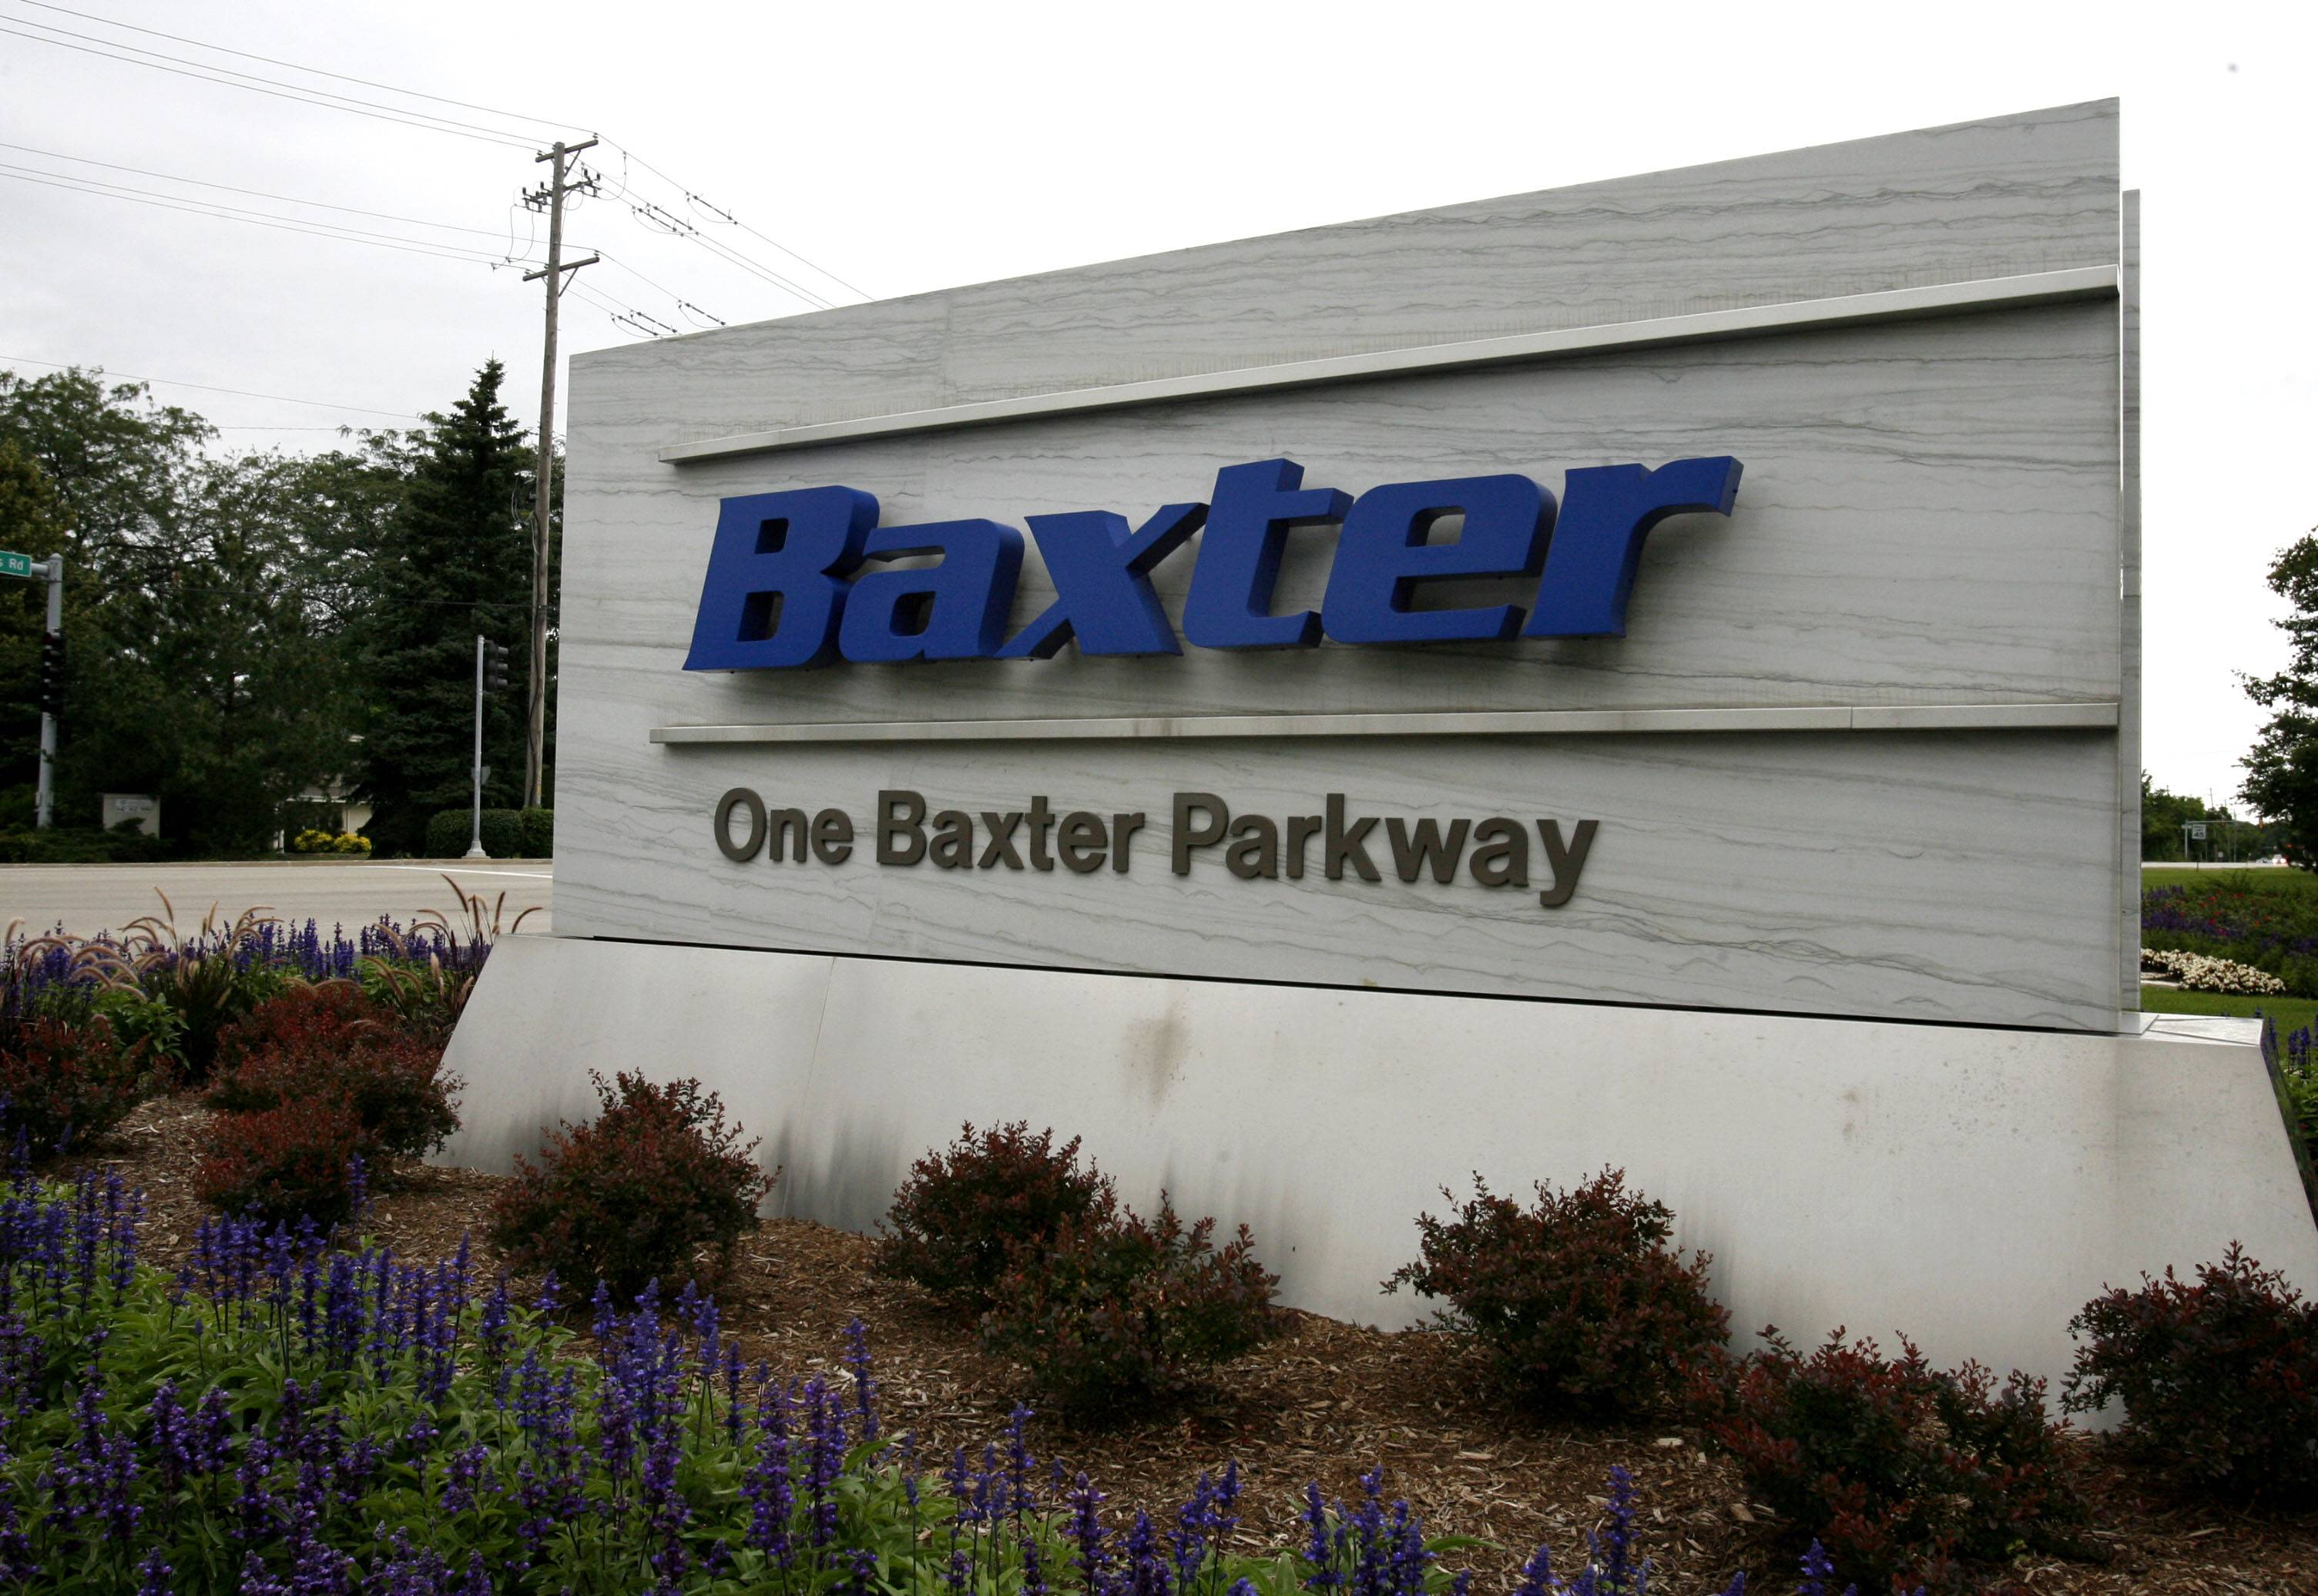 Baxter International and MATTER, a Chicago-based health care incubator and innovation community, announced a new collaboration to drive forward innovation focused on improving the value and quality of health care.